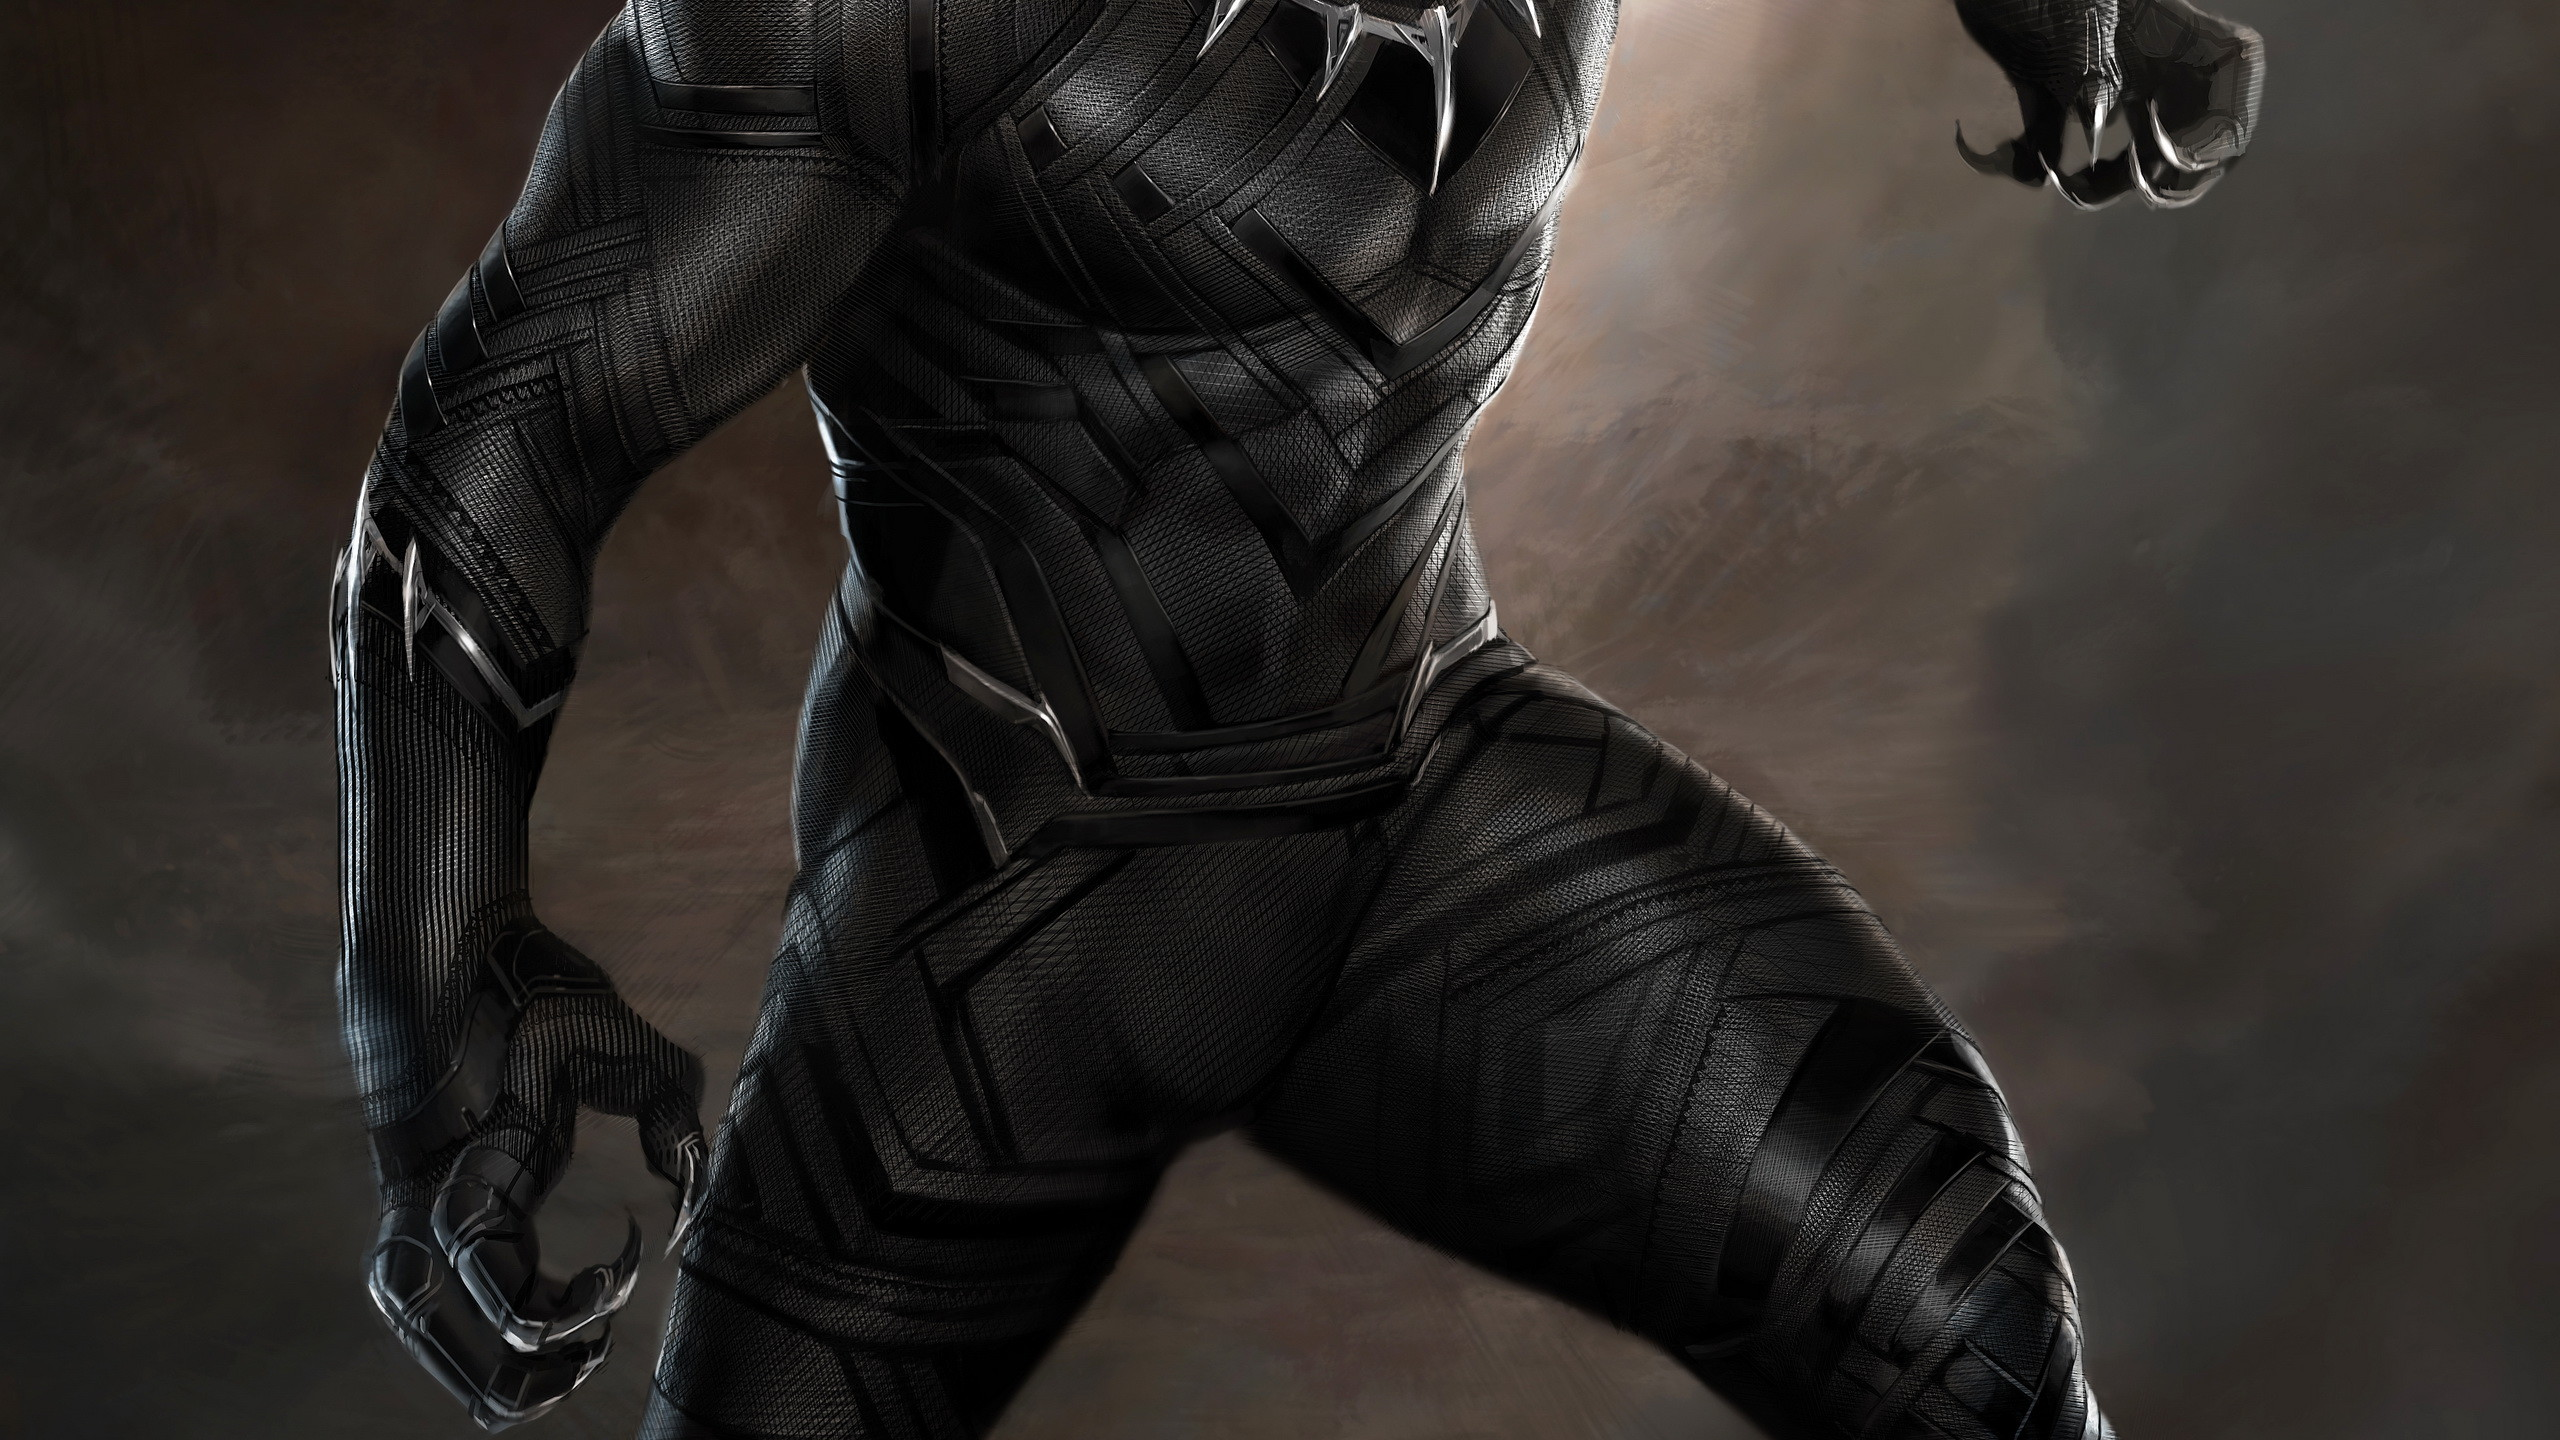 Movie Wallpaper Black Panther Movie Wallpaper Hd